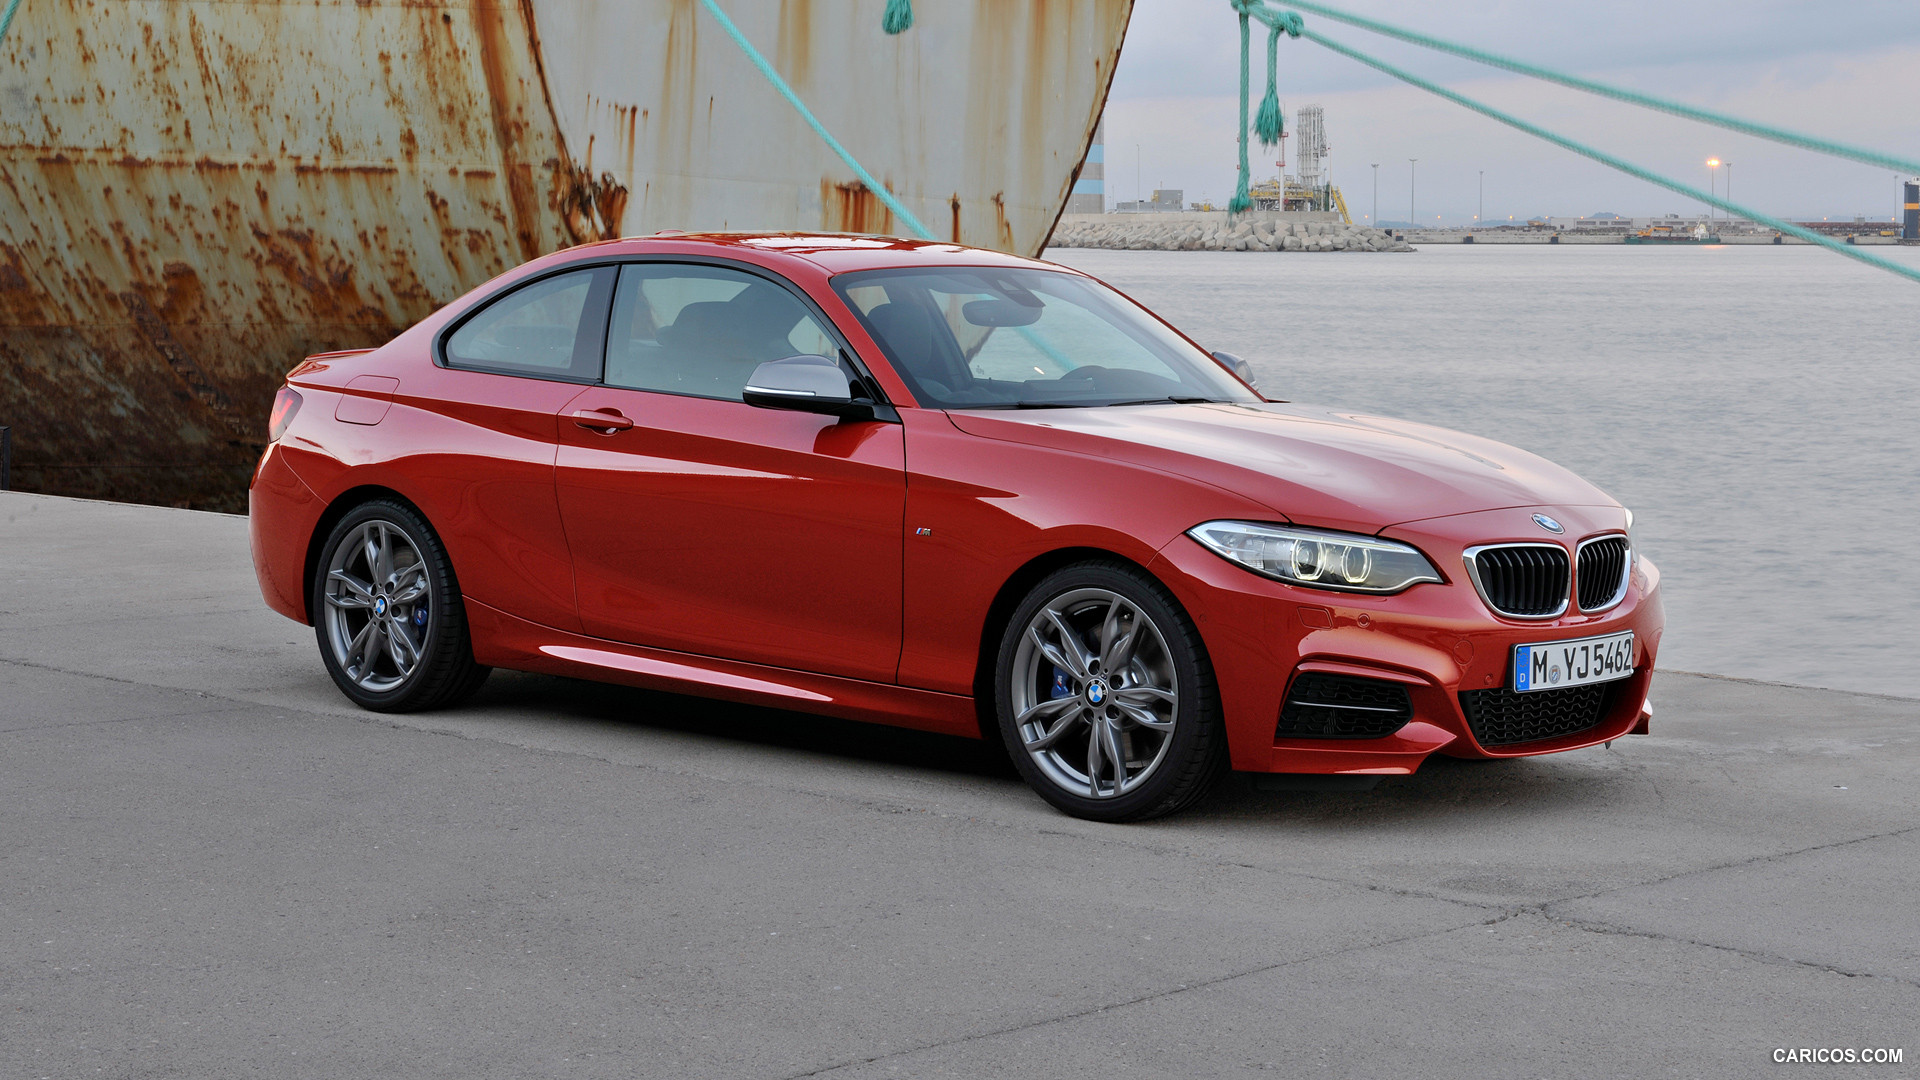 Images of 2014 BMW M235i Coupe | 1920x1080